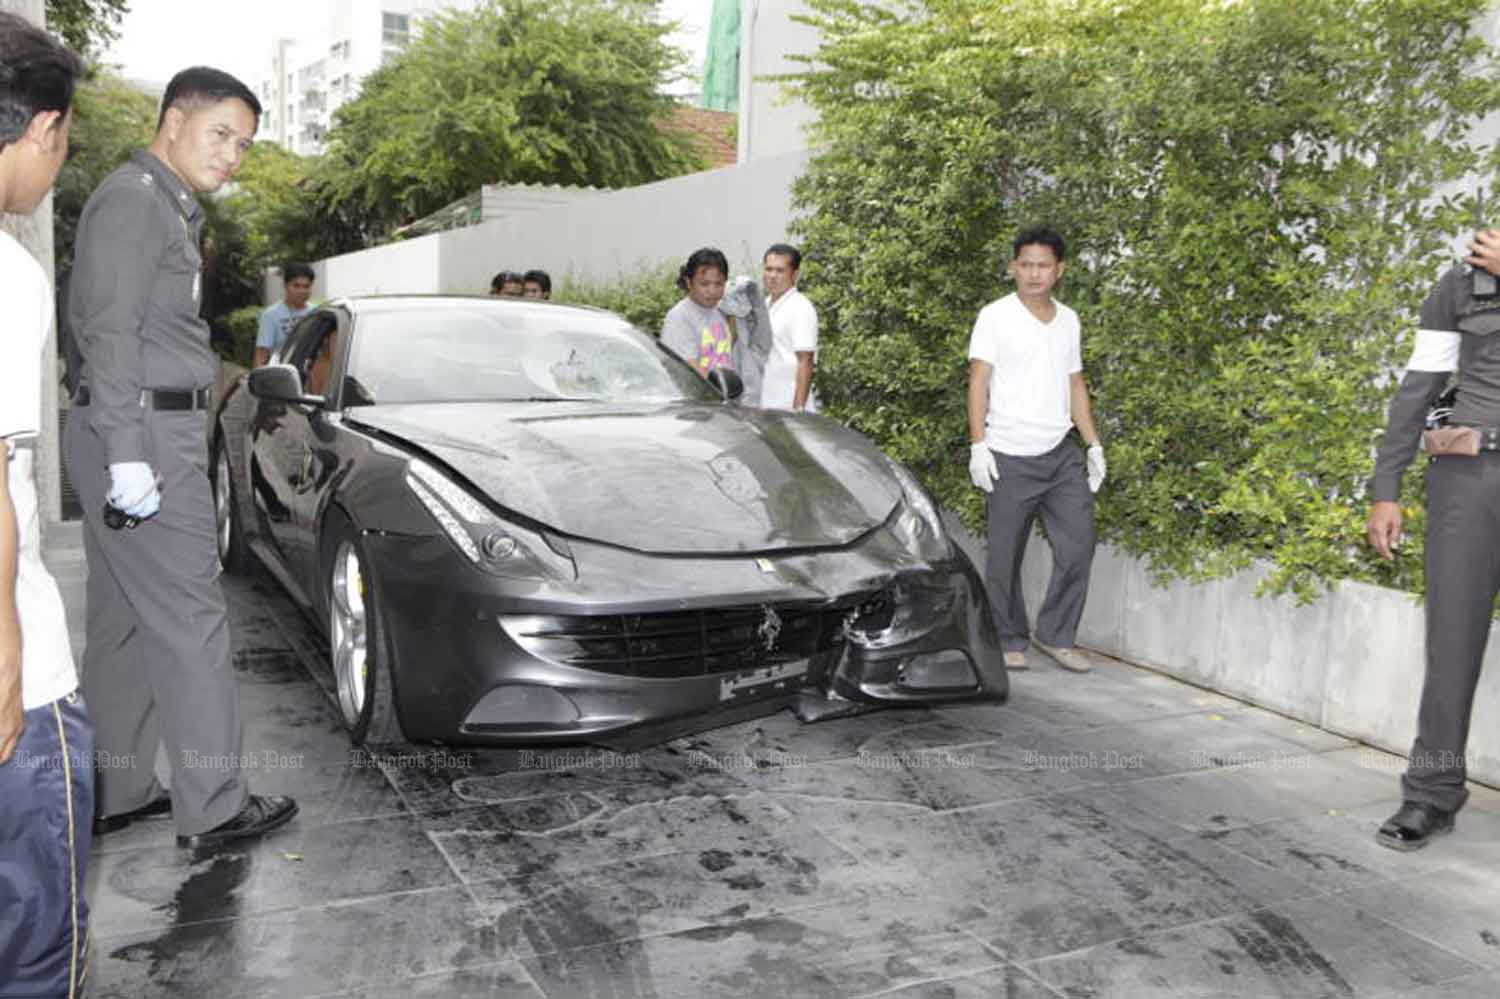 Vorayuth Yoovidhya's collision-damaged black Ferrari at the family home on Sukhumvit Soi 53 after the fatal accident in September 2012. (Photo by Kosol Nakachol)